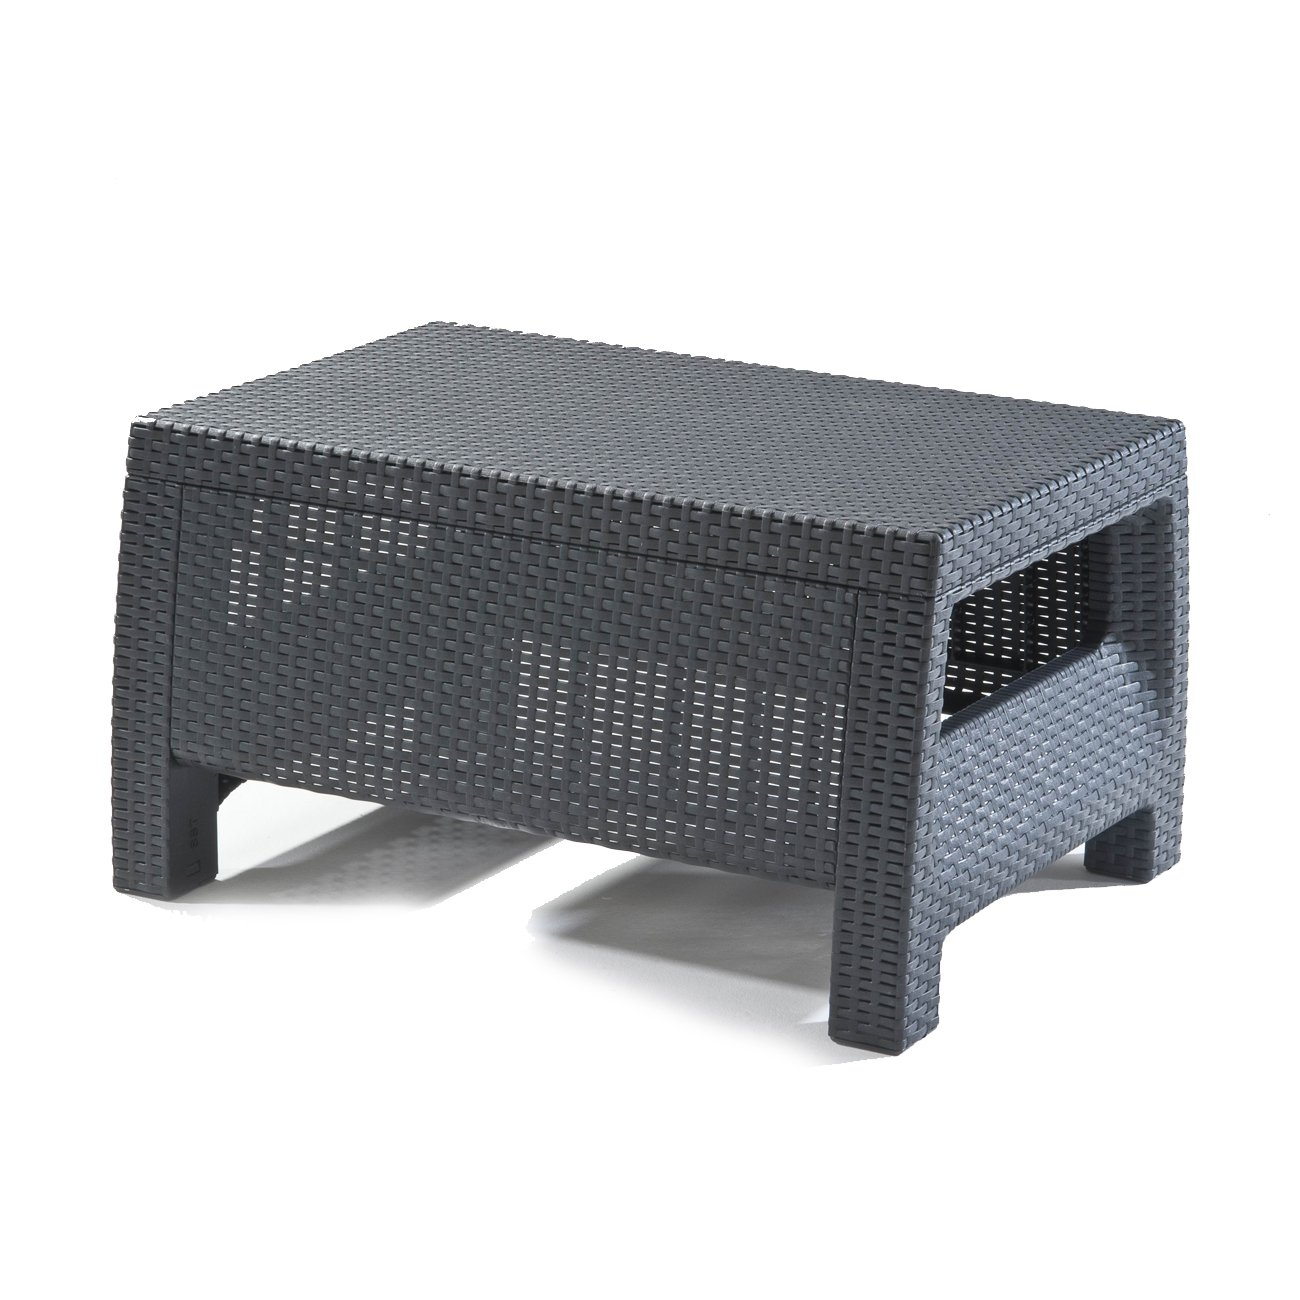 Outdoor Wicker Coffee Table With Storage: Rattan Outdoor Garden Furniture Coffee Table Durable